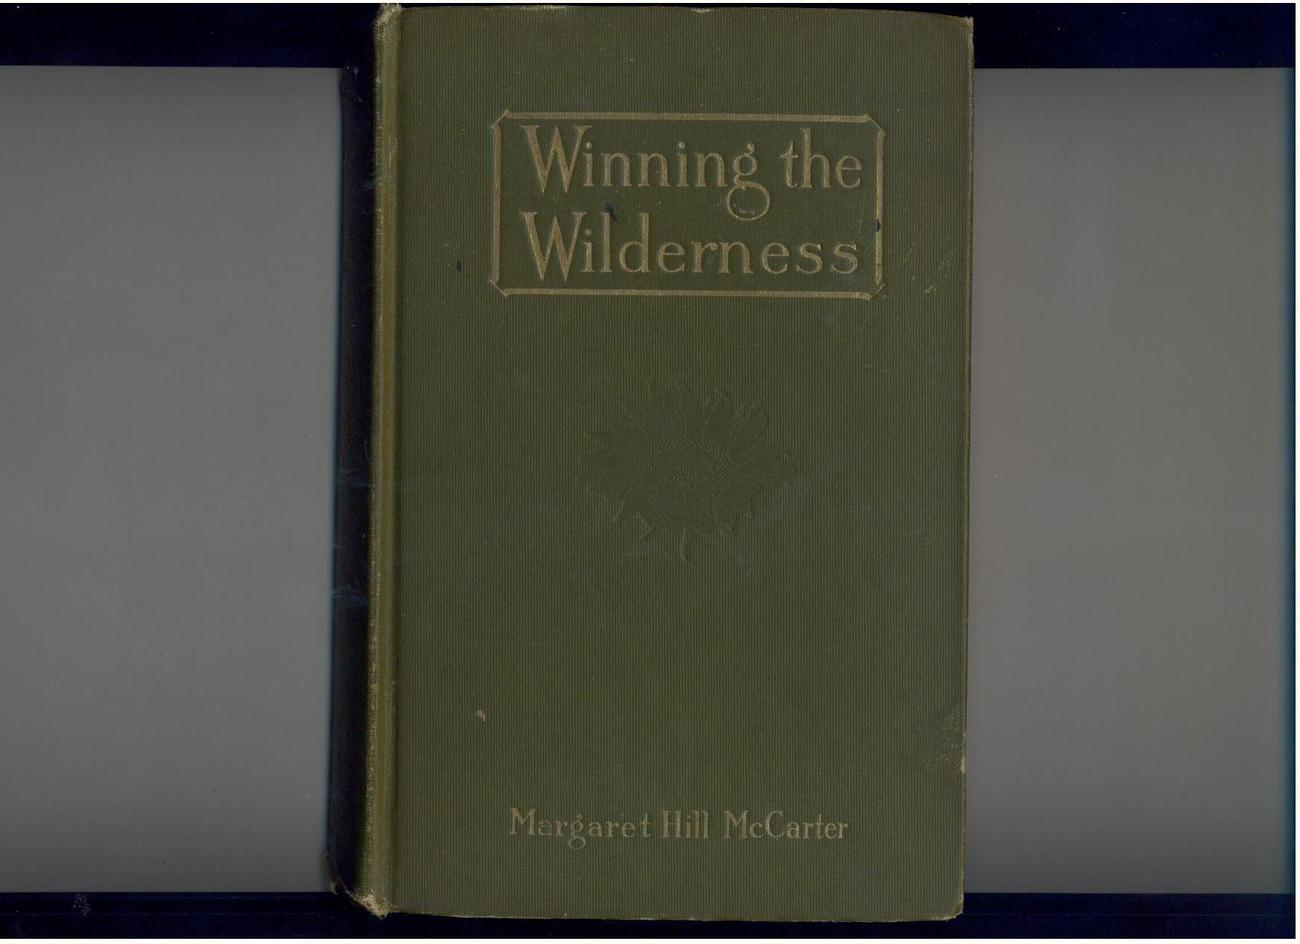 McCarter - WINNING THE WILDERNESS - 1914 - 1st Edition